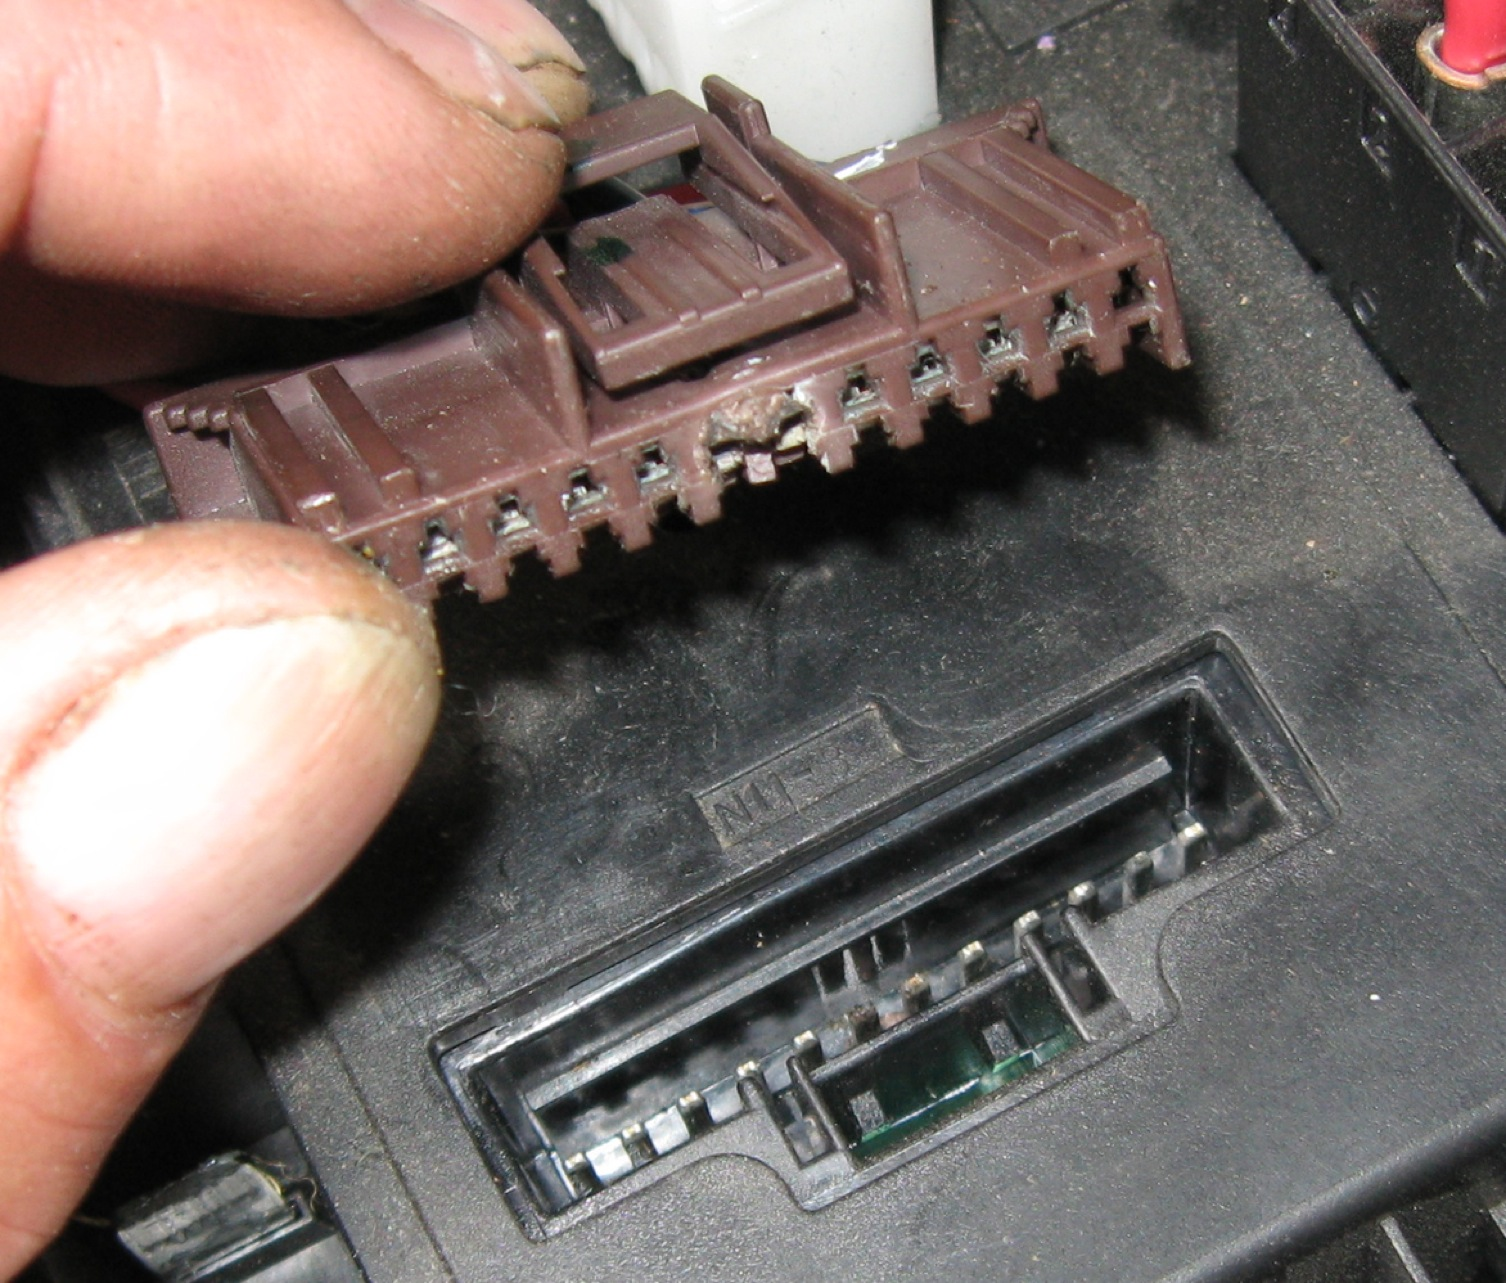 Sam Woes And How To Cure Them 450 Model 2005 2006 Car Fuse Box Not Working Post 5138 1340799729 Thumb